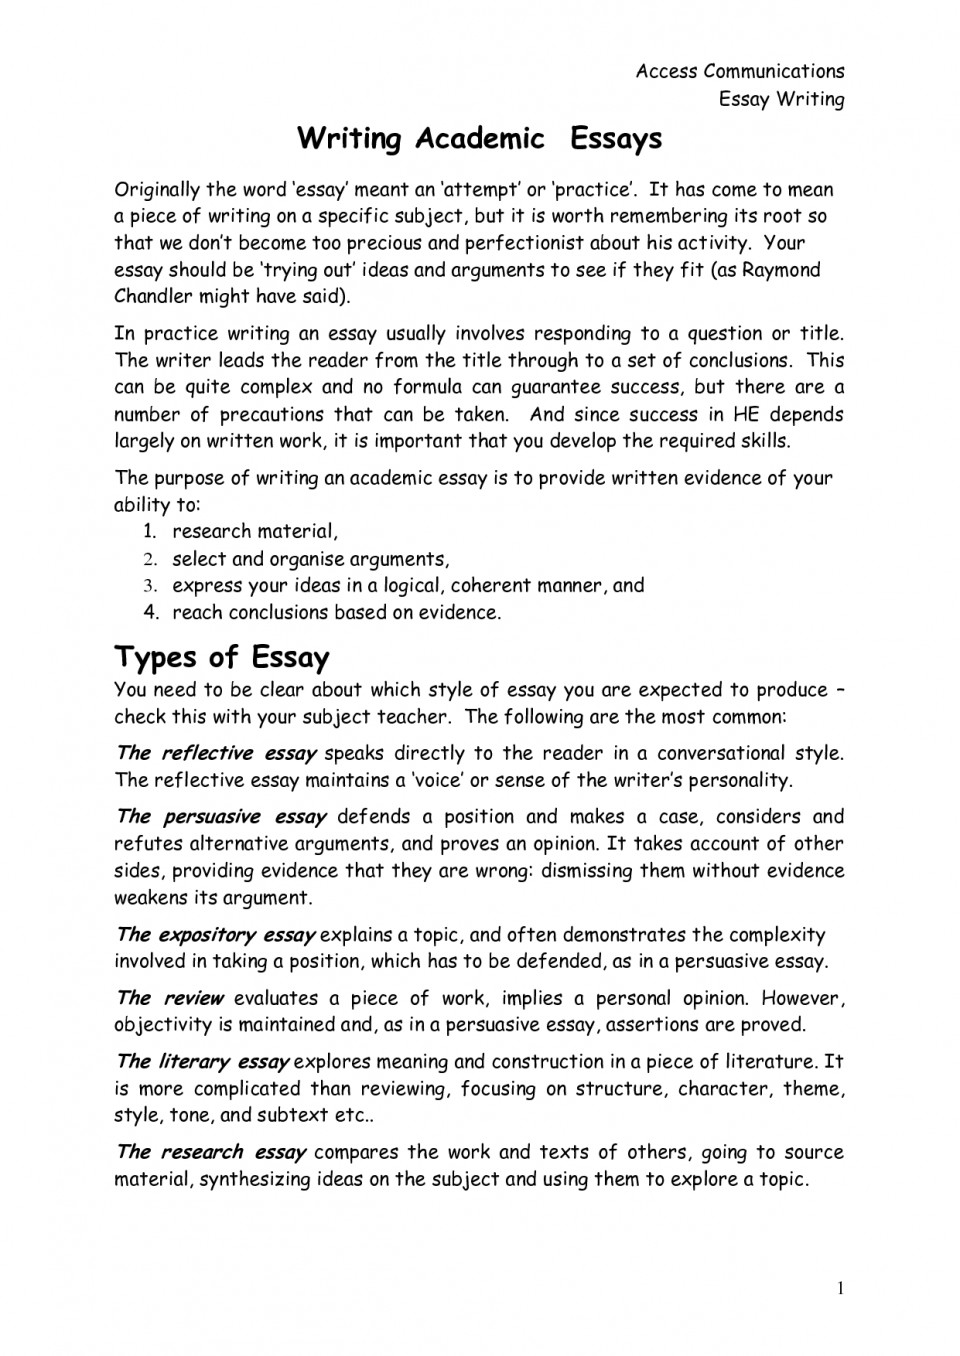 016 Reflective Essay On Academic Writings Beautiful Examples Advanced Higher English Writing Example Pdf About Life 960